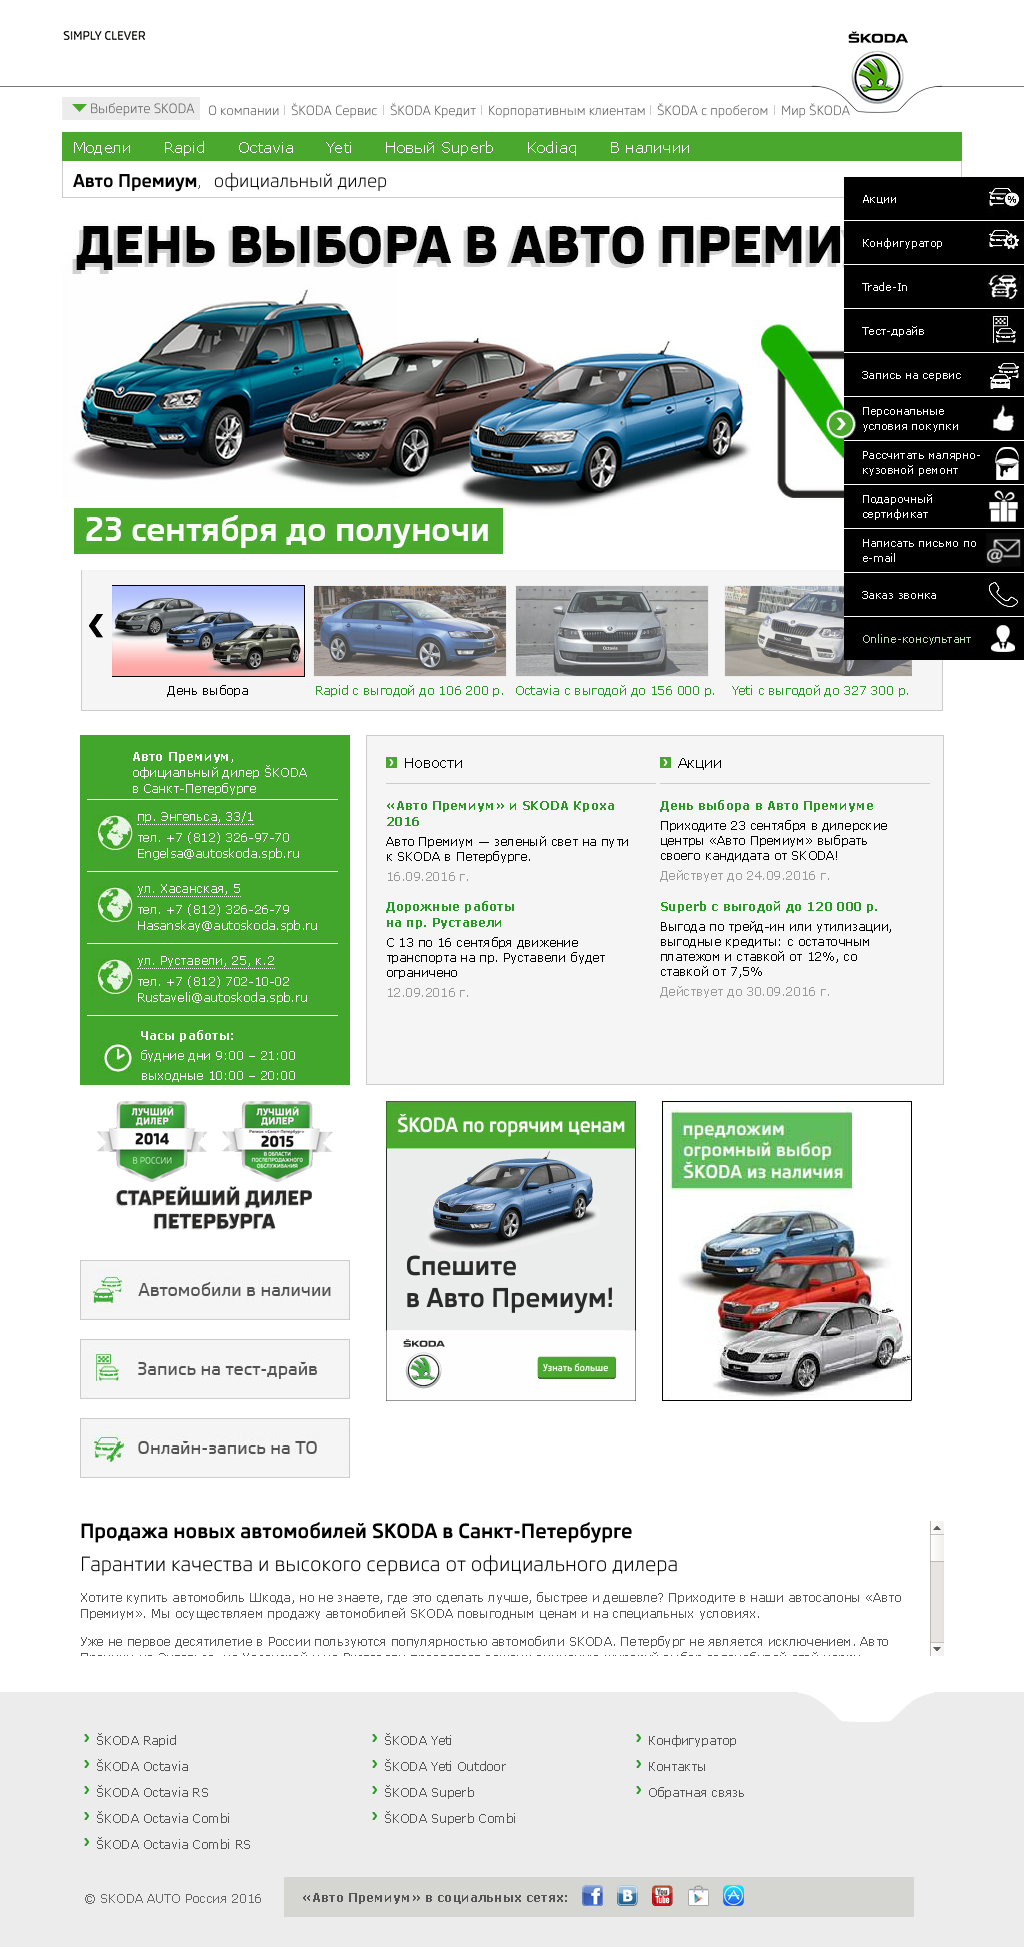 Auto Premium - authorized distributor of Skoda